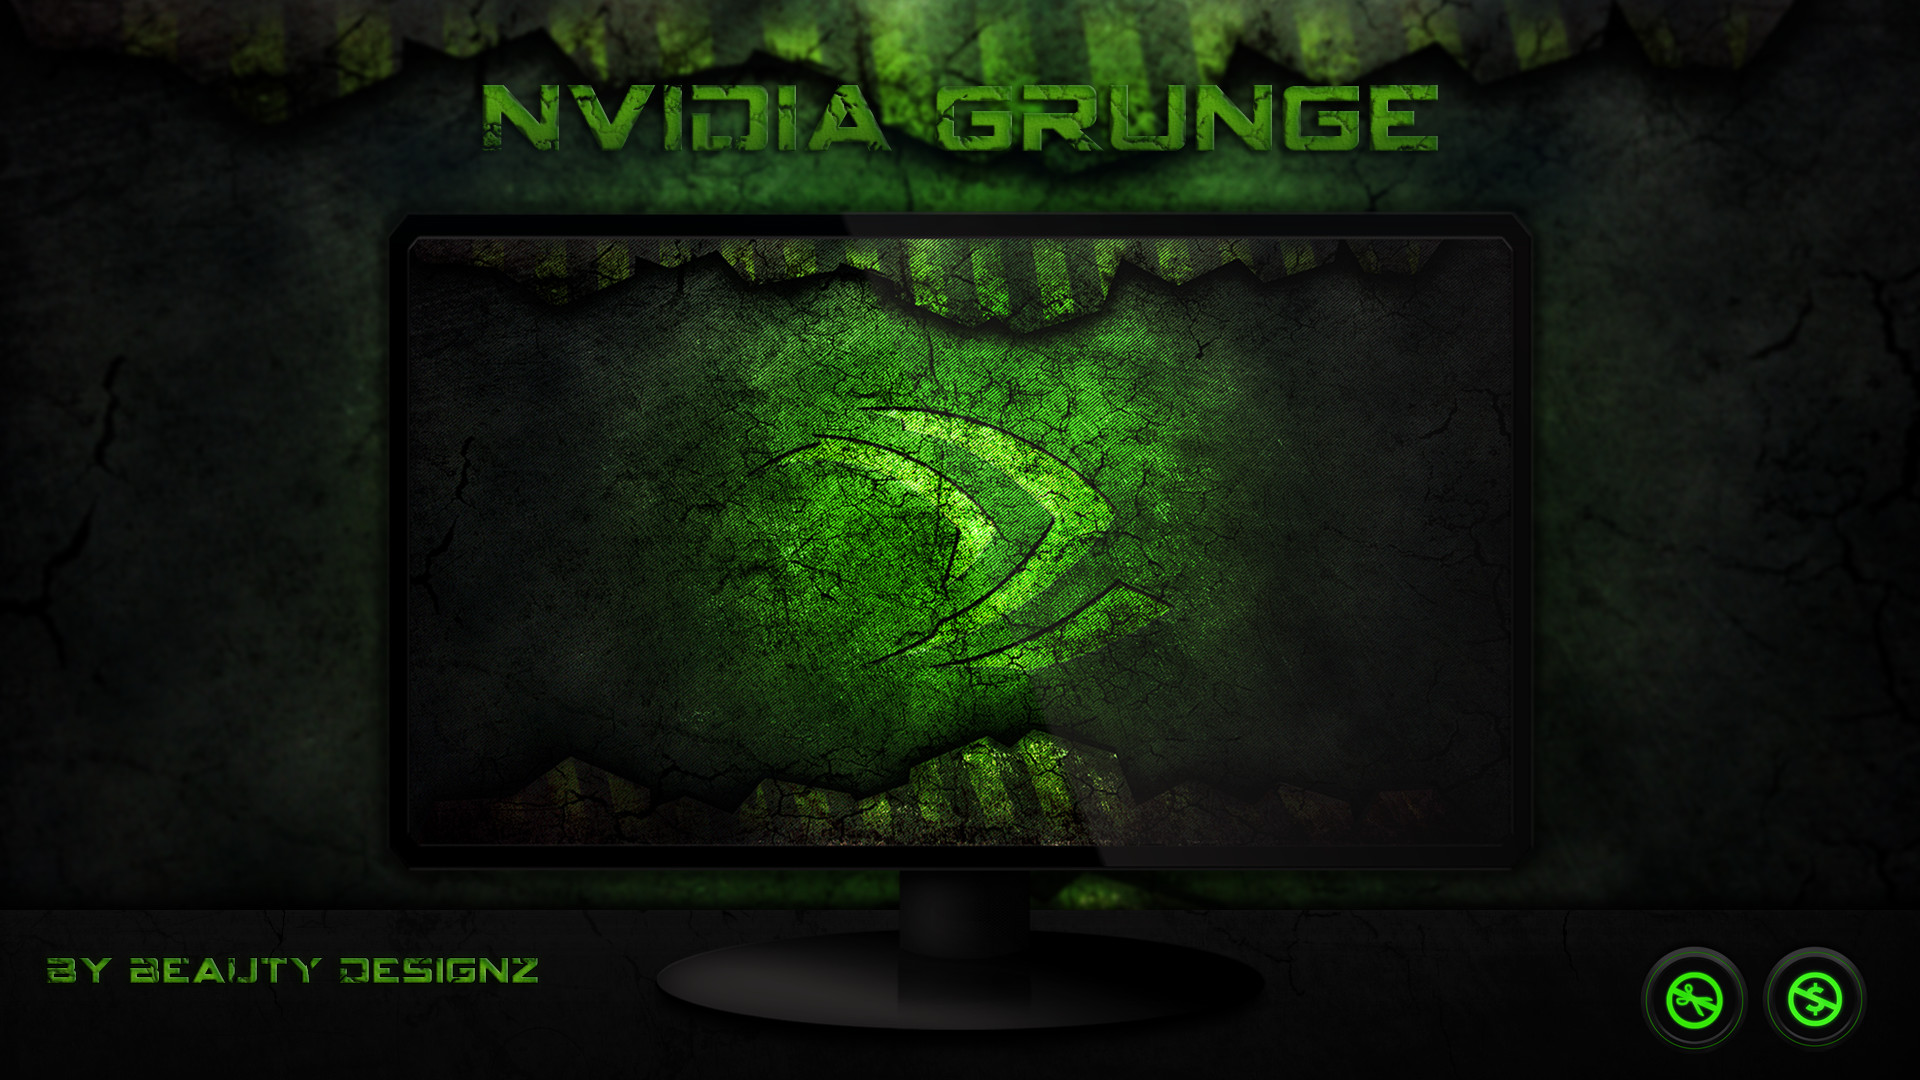 Top Great Evga Nvidia Green Images for Pinterest